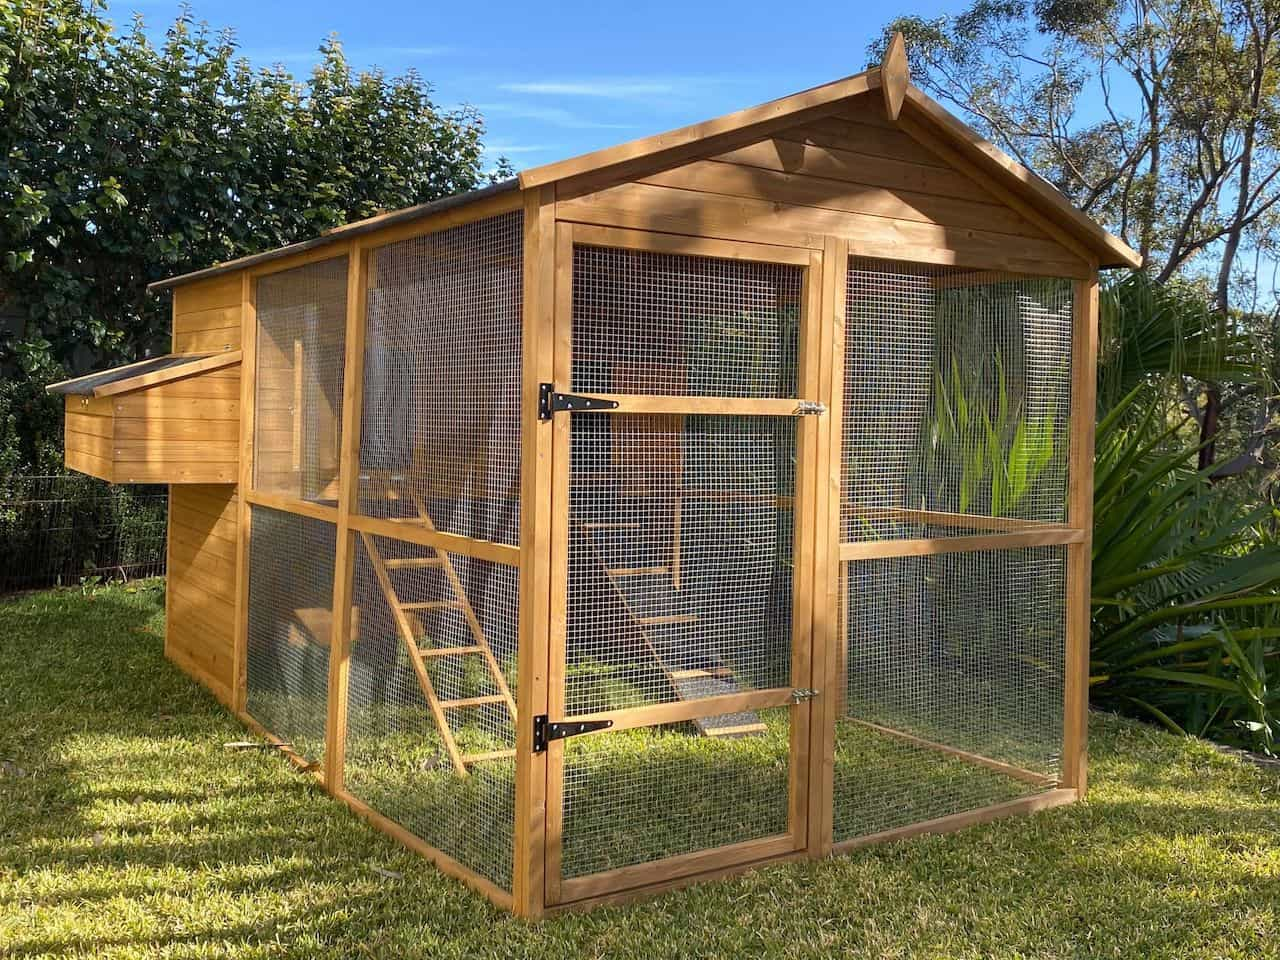 Somerzby Rabbit Hutch, Breeding Banks, Cages for Sale